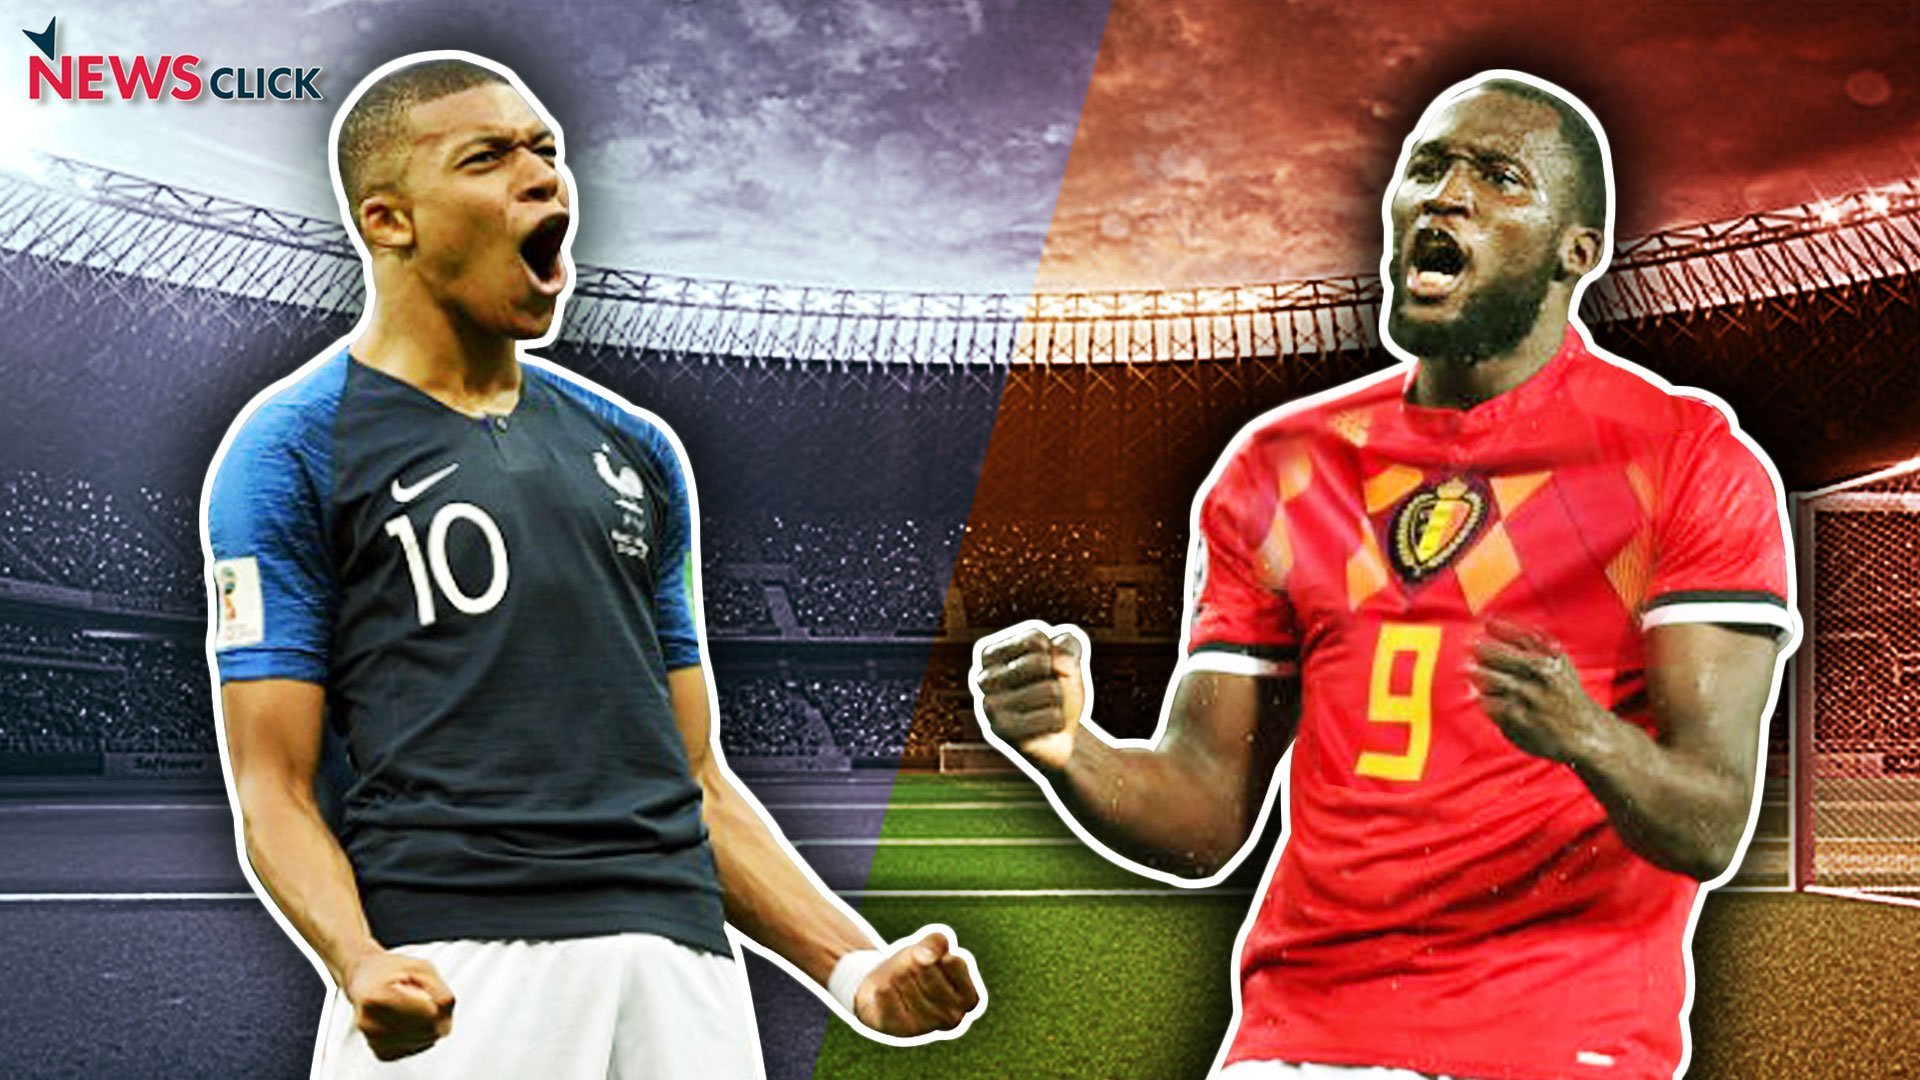 Kylian Mbappe and Romelu Lukaku at FIFA World Cup.